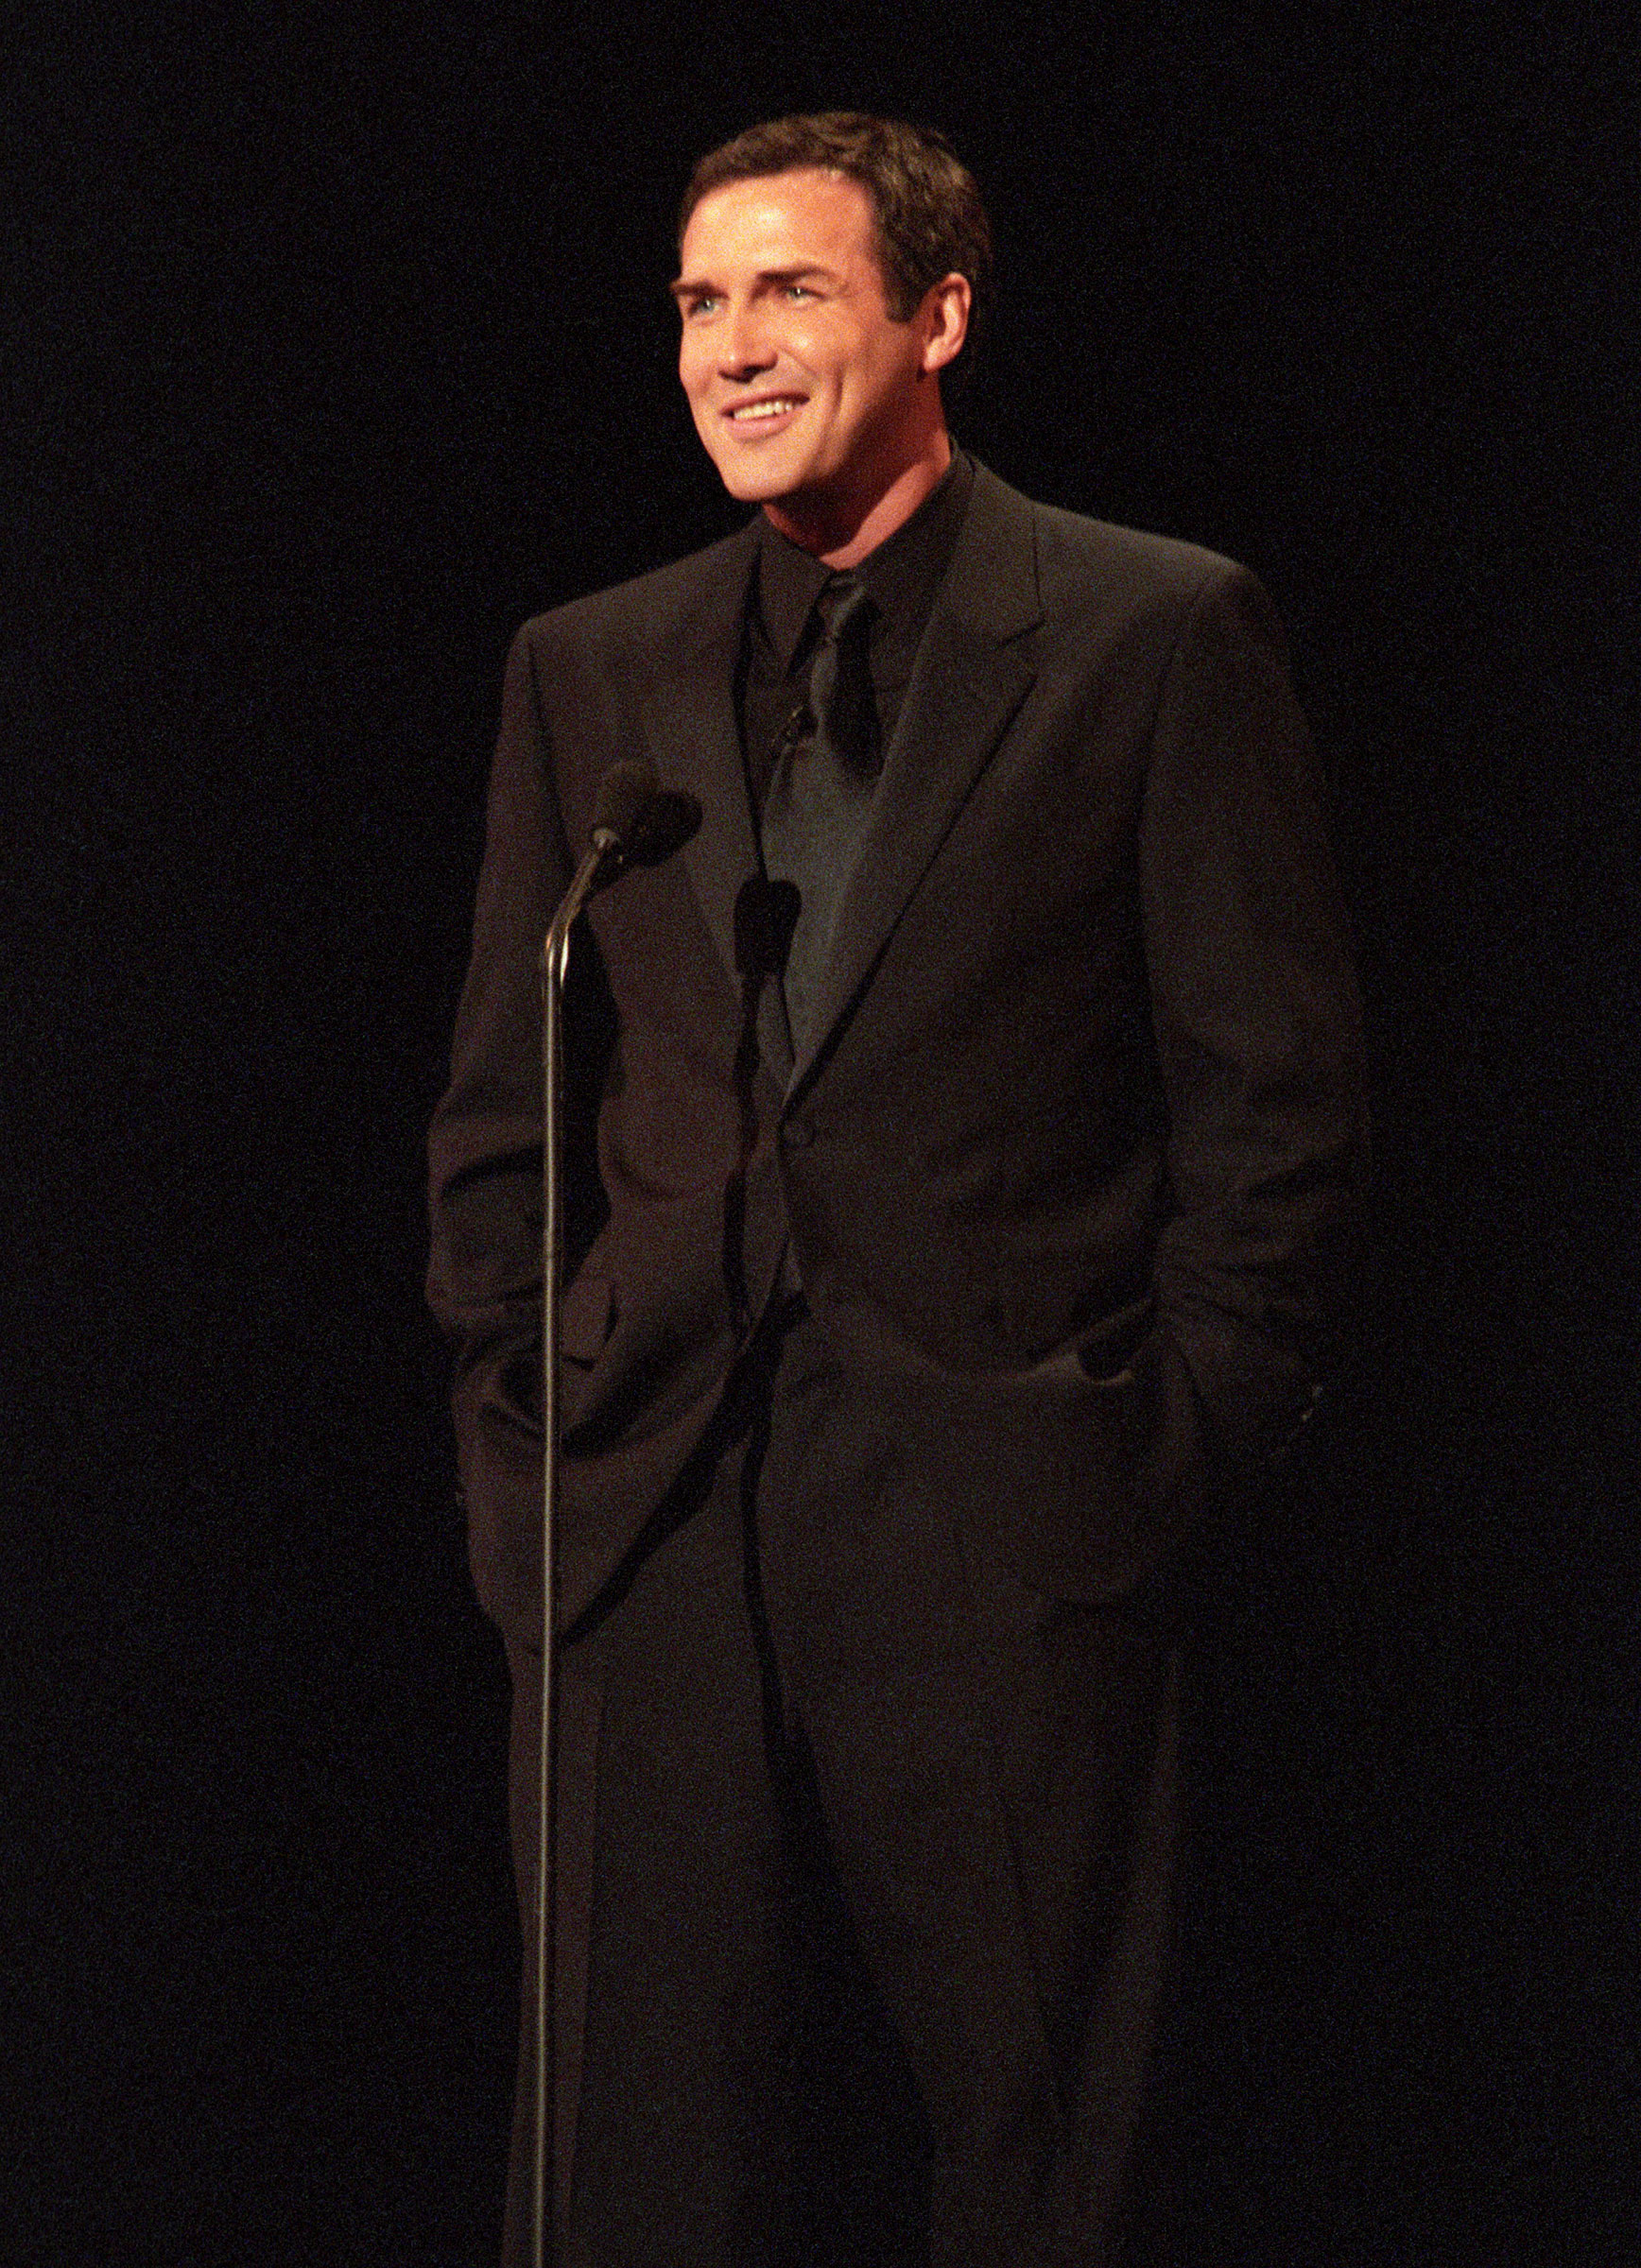 Norm Macdonald hosts the American Music Awards on January 17, 2000.